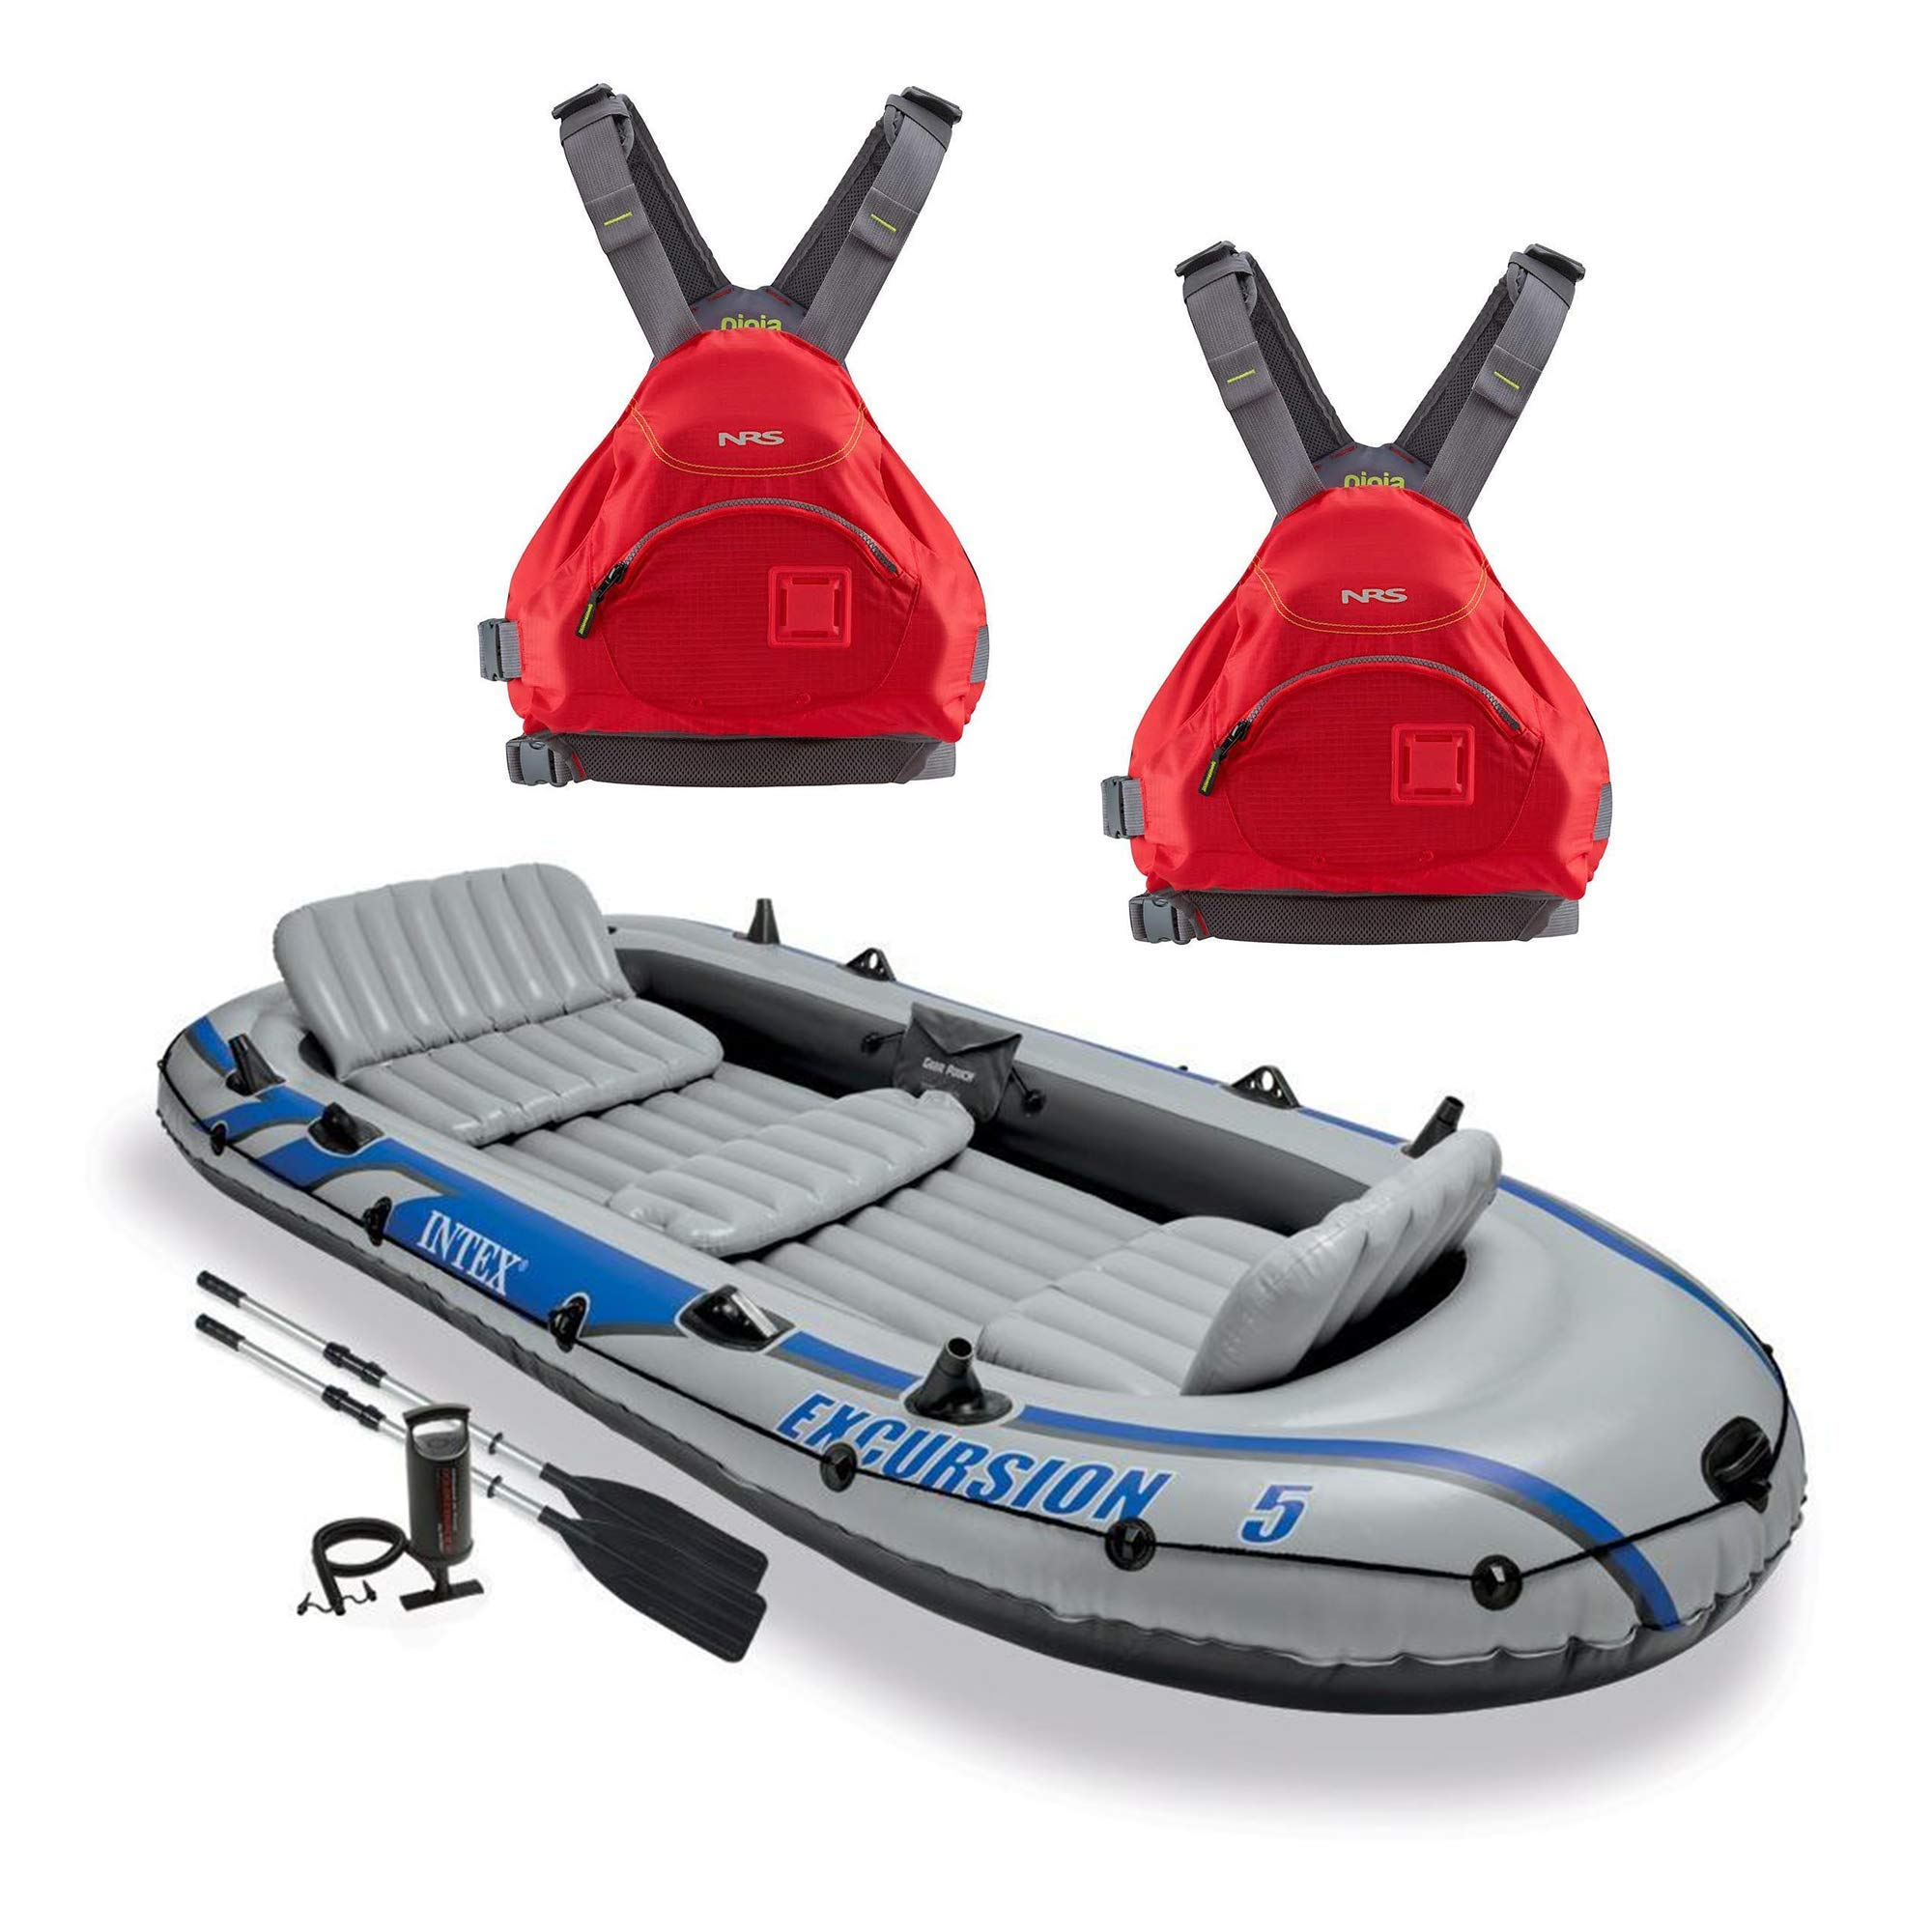 Intex Excursion 5 Person Inflatable Rafting and Fishing Boat Set with 2 OarsNRS Ninja Adult Small Medium PFD Type III Boating Kayak Life Jacket Vest, Red